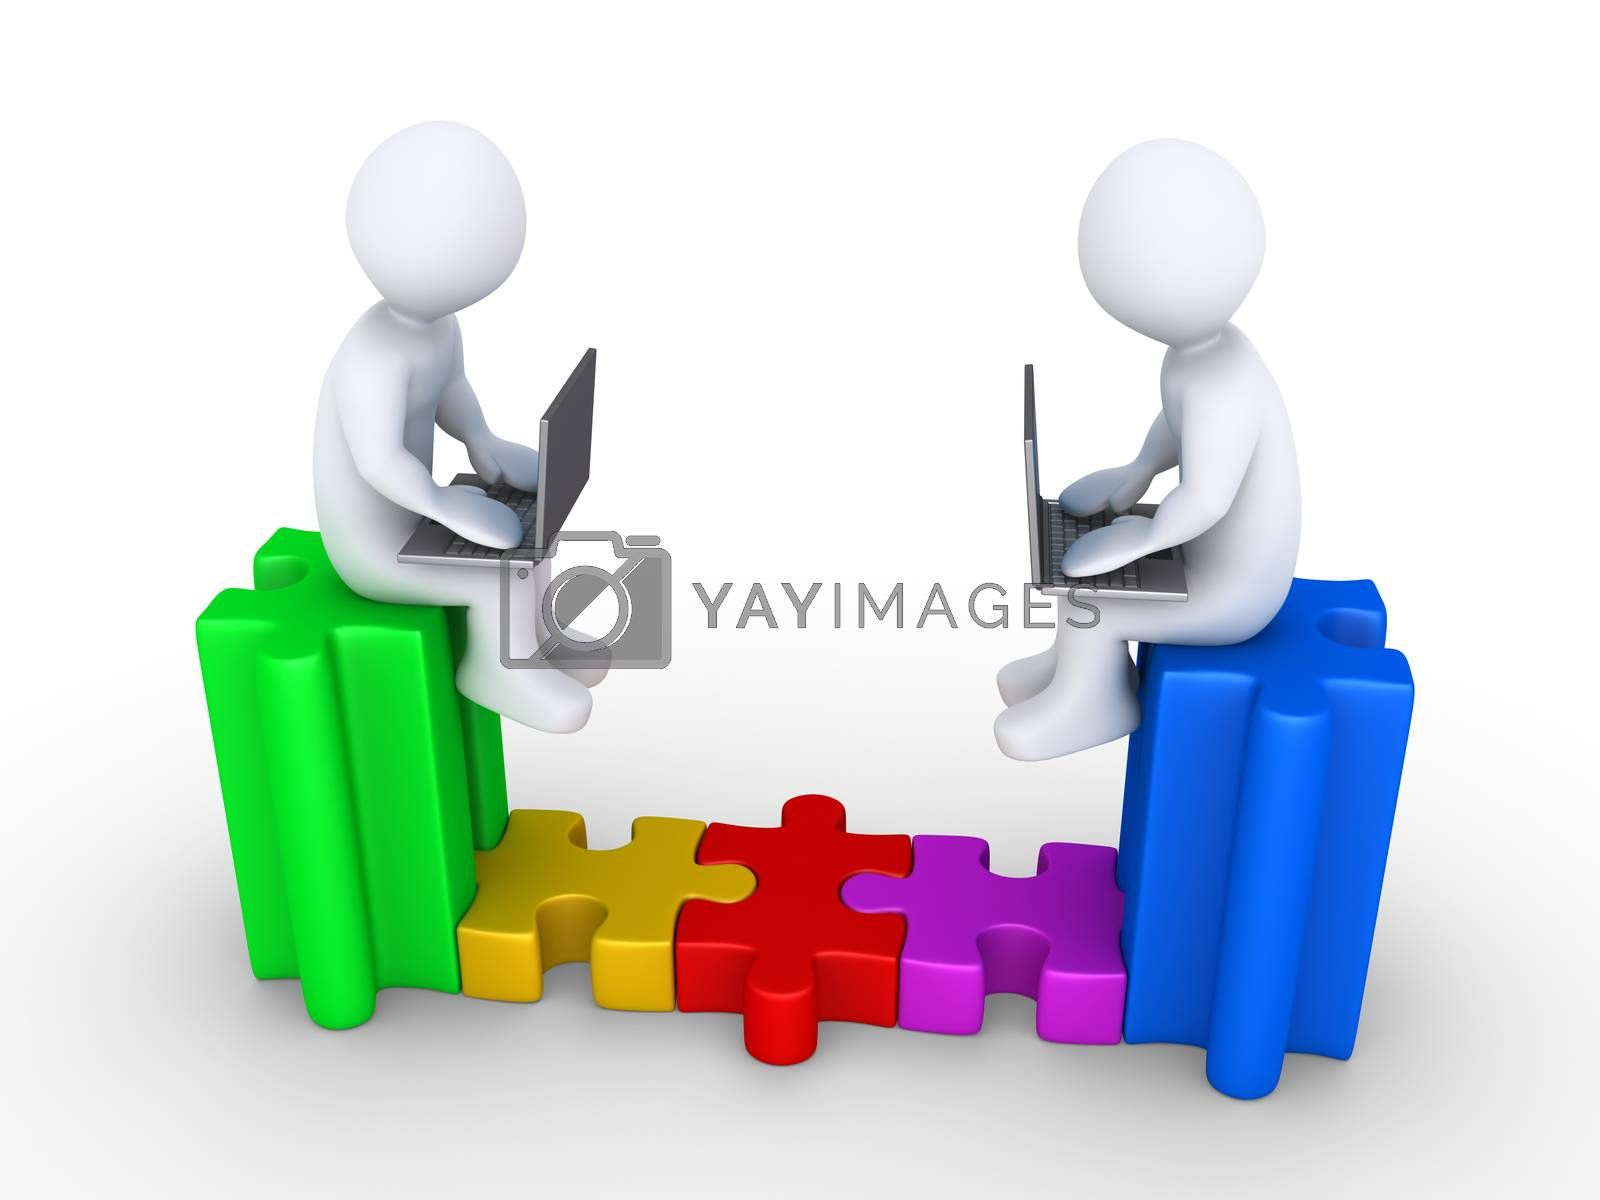 Two people with laptops sitting on puzzle pieces, are connected